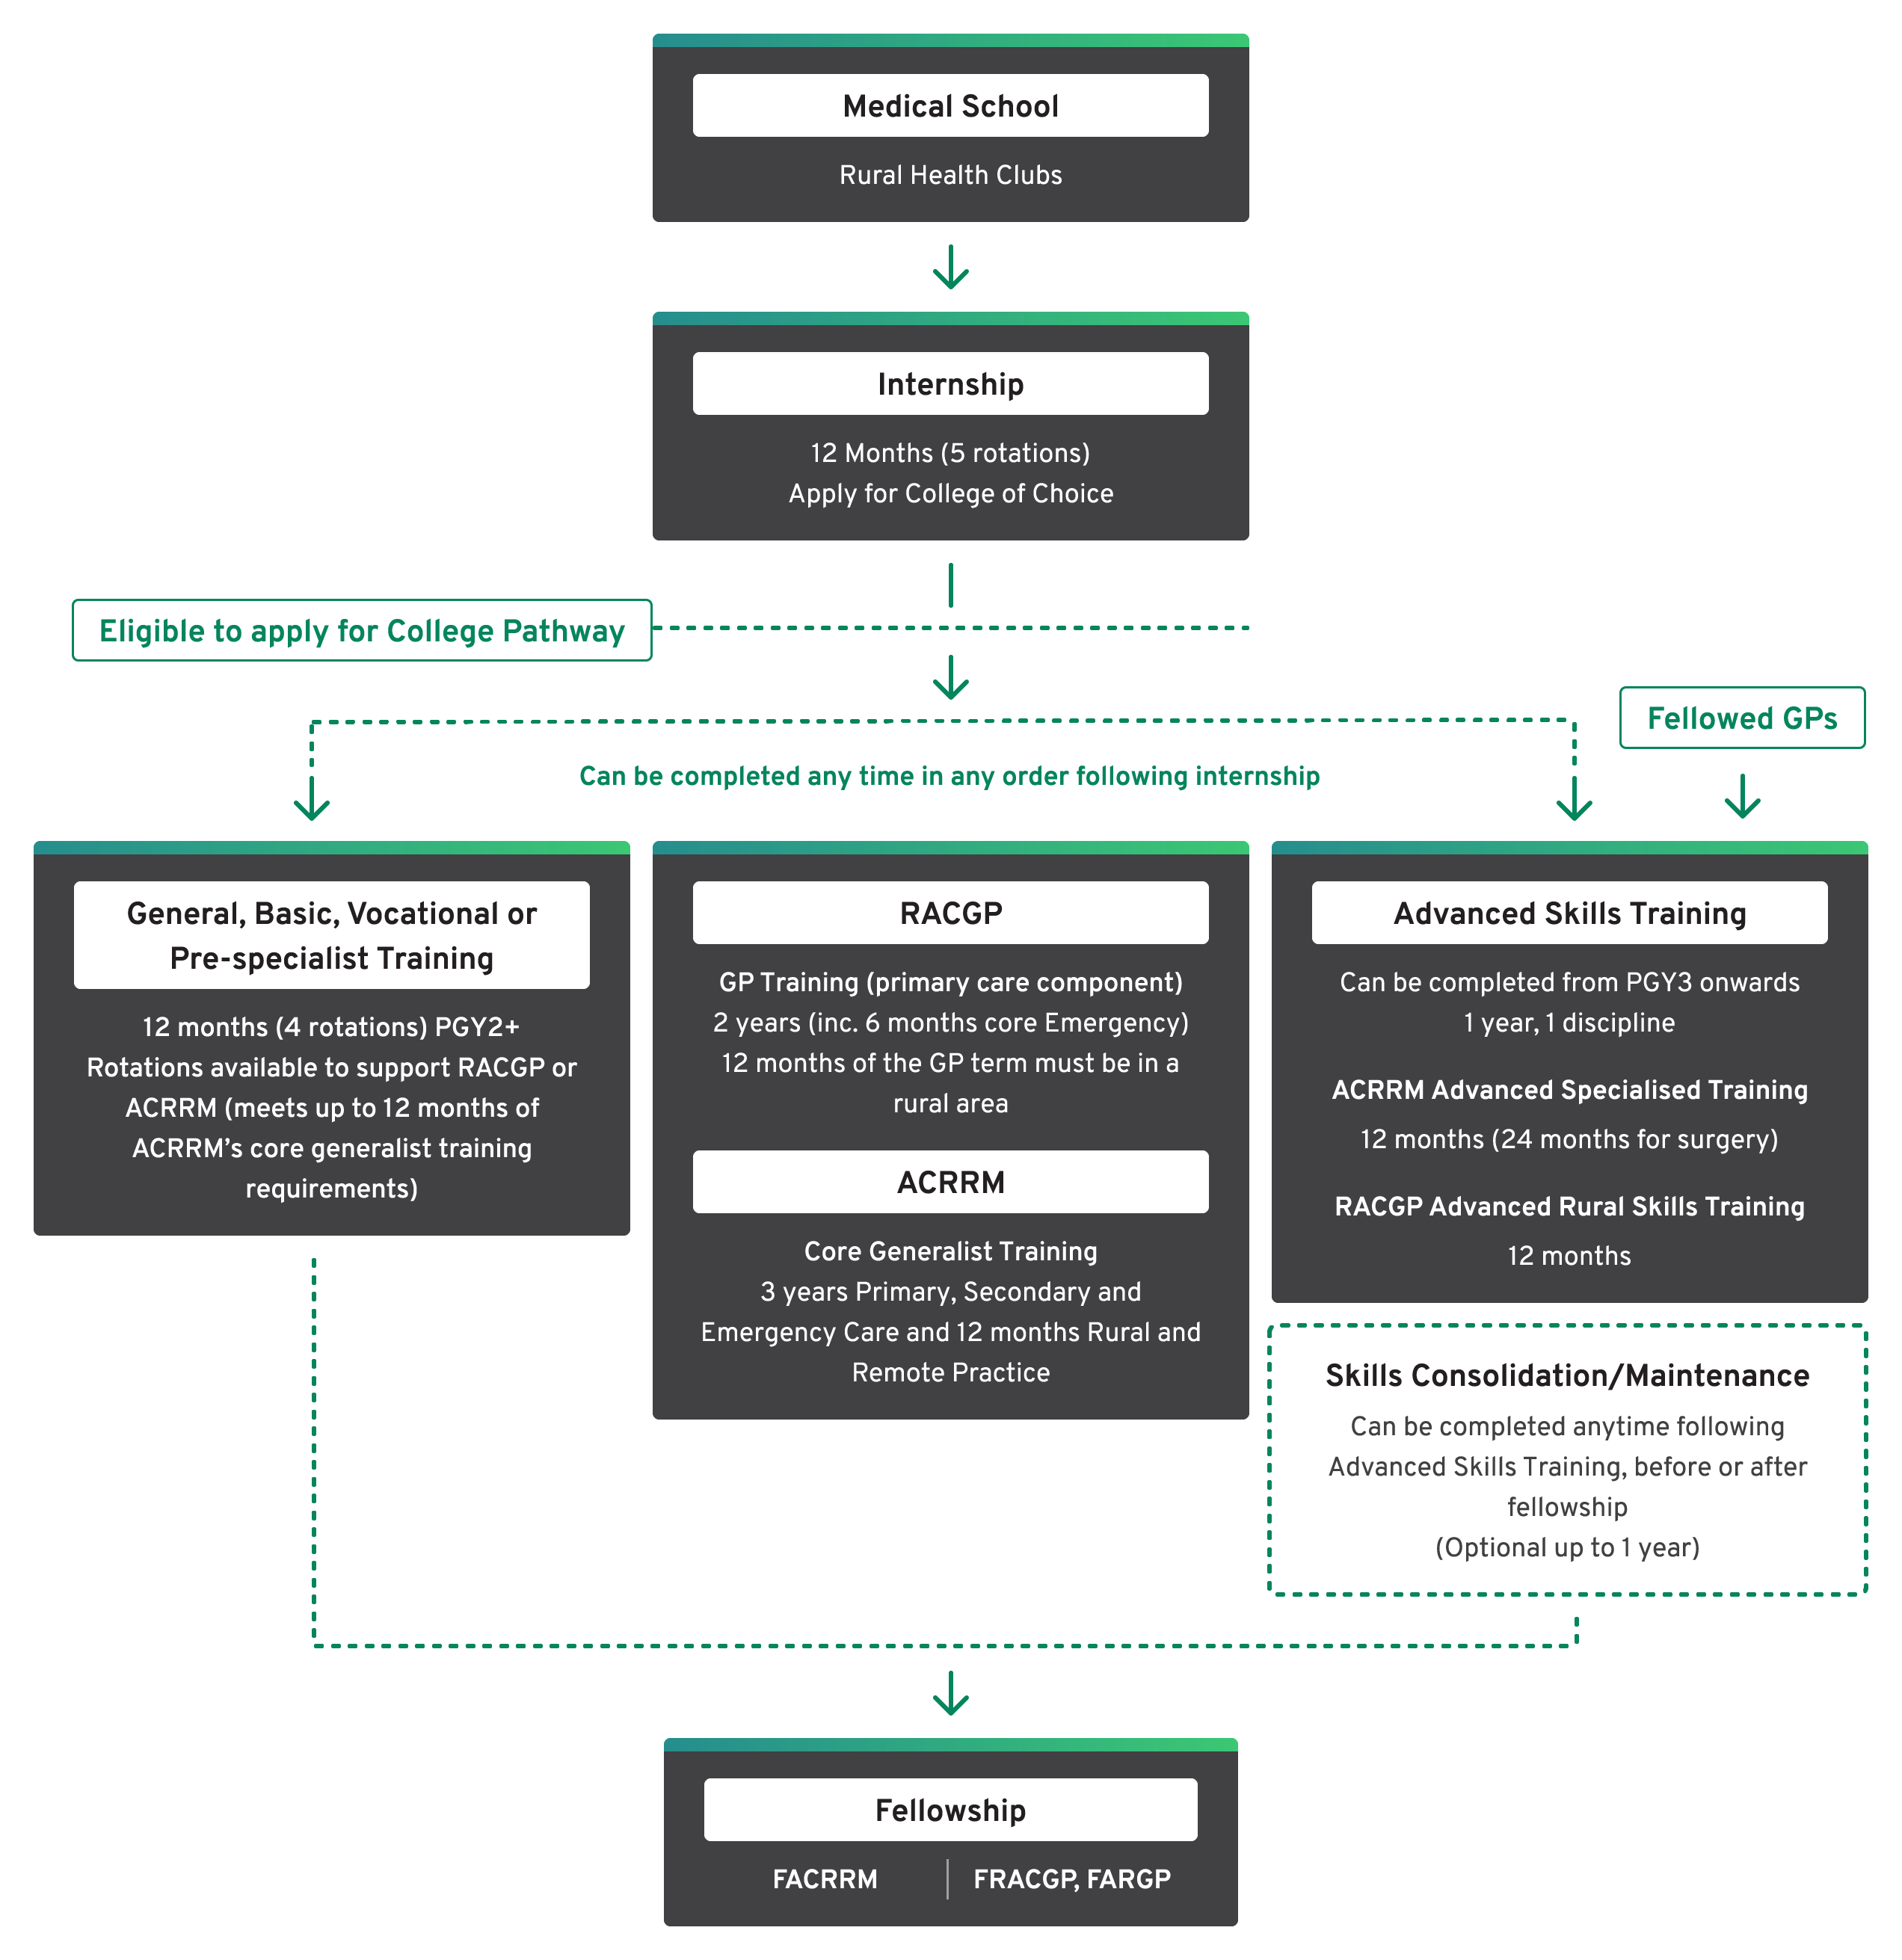 Infographic shows the pathway(s) from medical school through to fellowship. After medical school, an internship is undertaken with trainees then able to apply for a either ACRRM or RACGP college pathway. After internship, three stages of training need to be completed. These can be done in any order; a) general, basic, vocational or pre-specialist training, b) GP training for RACGP or Core Generalist training for ACRRM and c) Advanced Skills training. Fellowed GPs looking to develop an advanced skill are also able to join at this point. An optional skills consolidation and maintenance period can also be done following advanced skills training. Once all required components have been completed Fellowship is then attained.